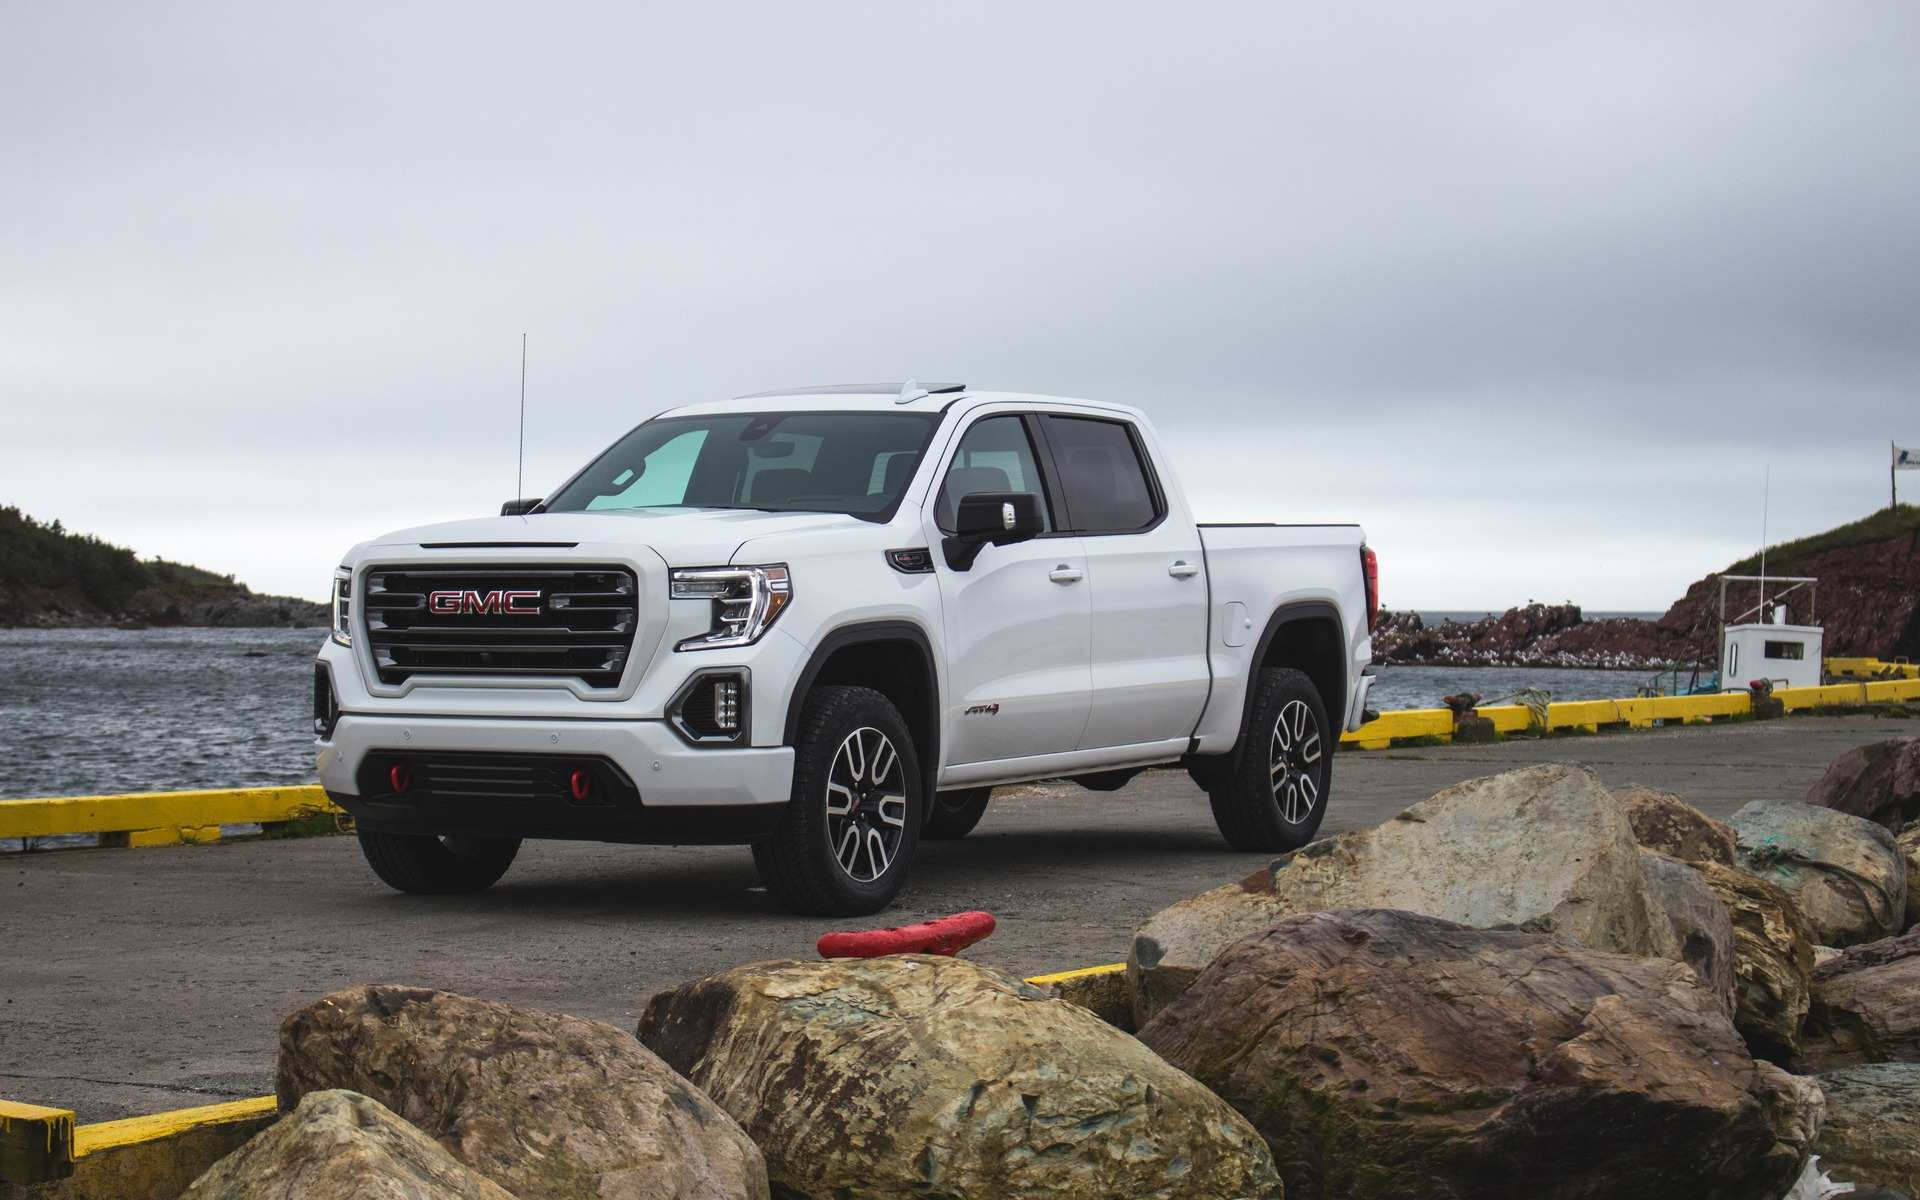 55 All New 2019 GMC Sierra 1500 Price Design And Review